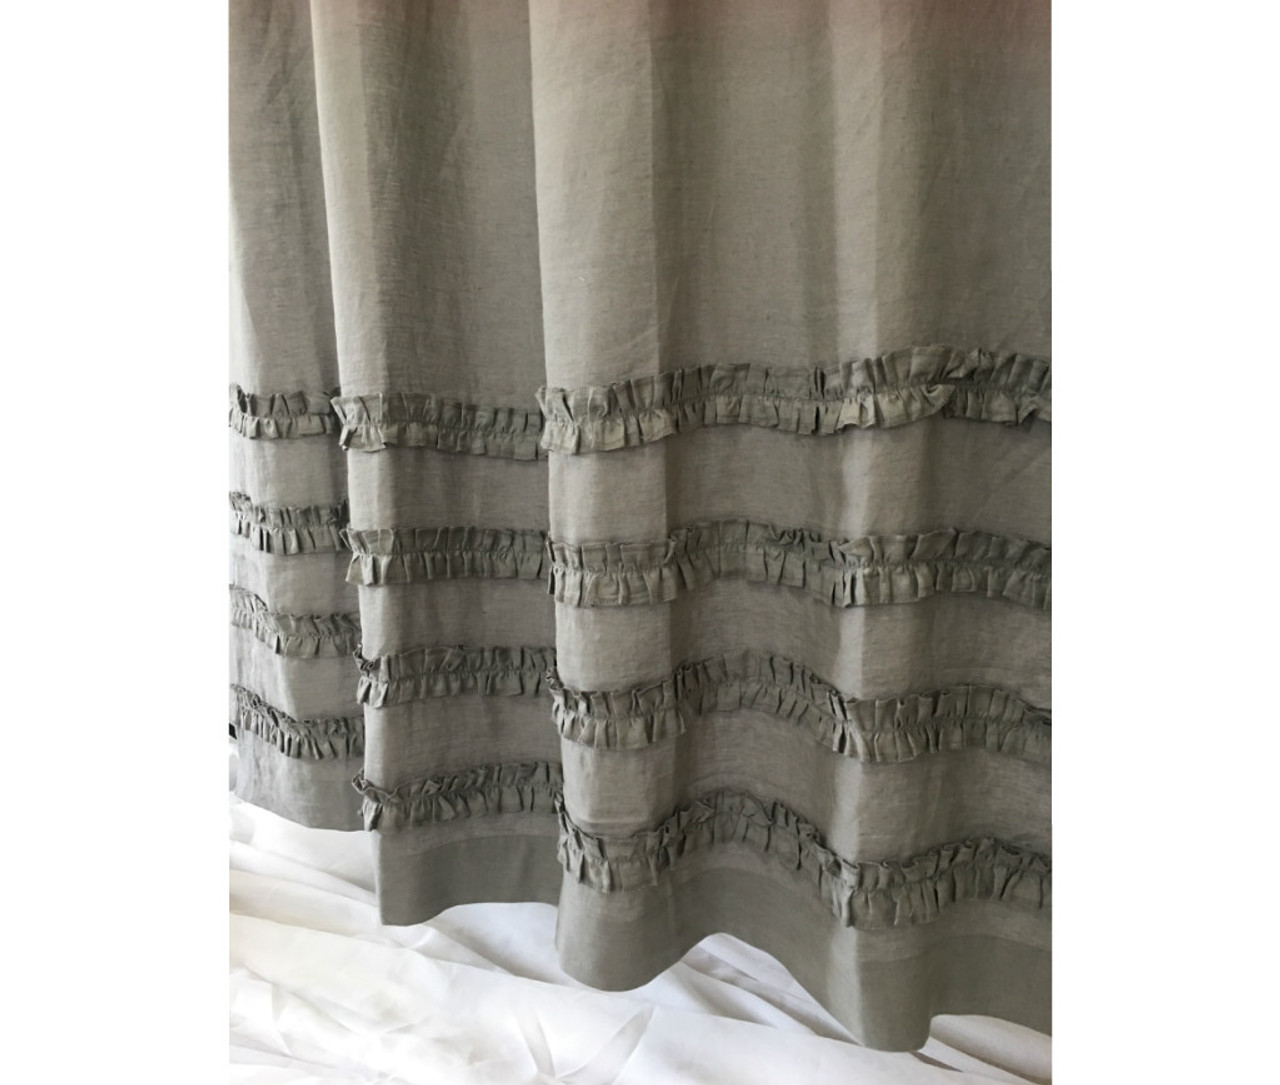 Grey Linen Shower Curtains with 4 Rows of Ruffles, Dress up your Tub!